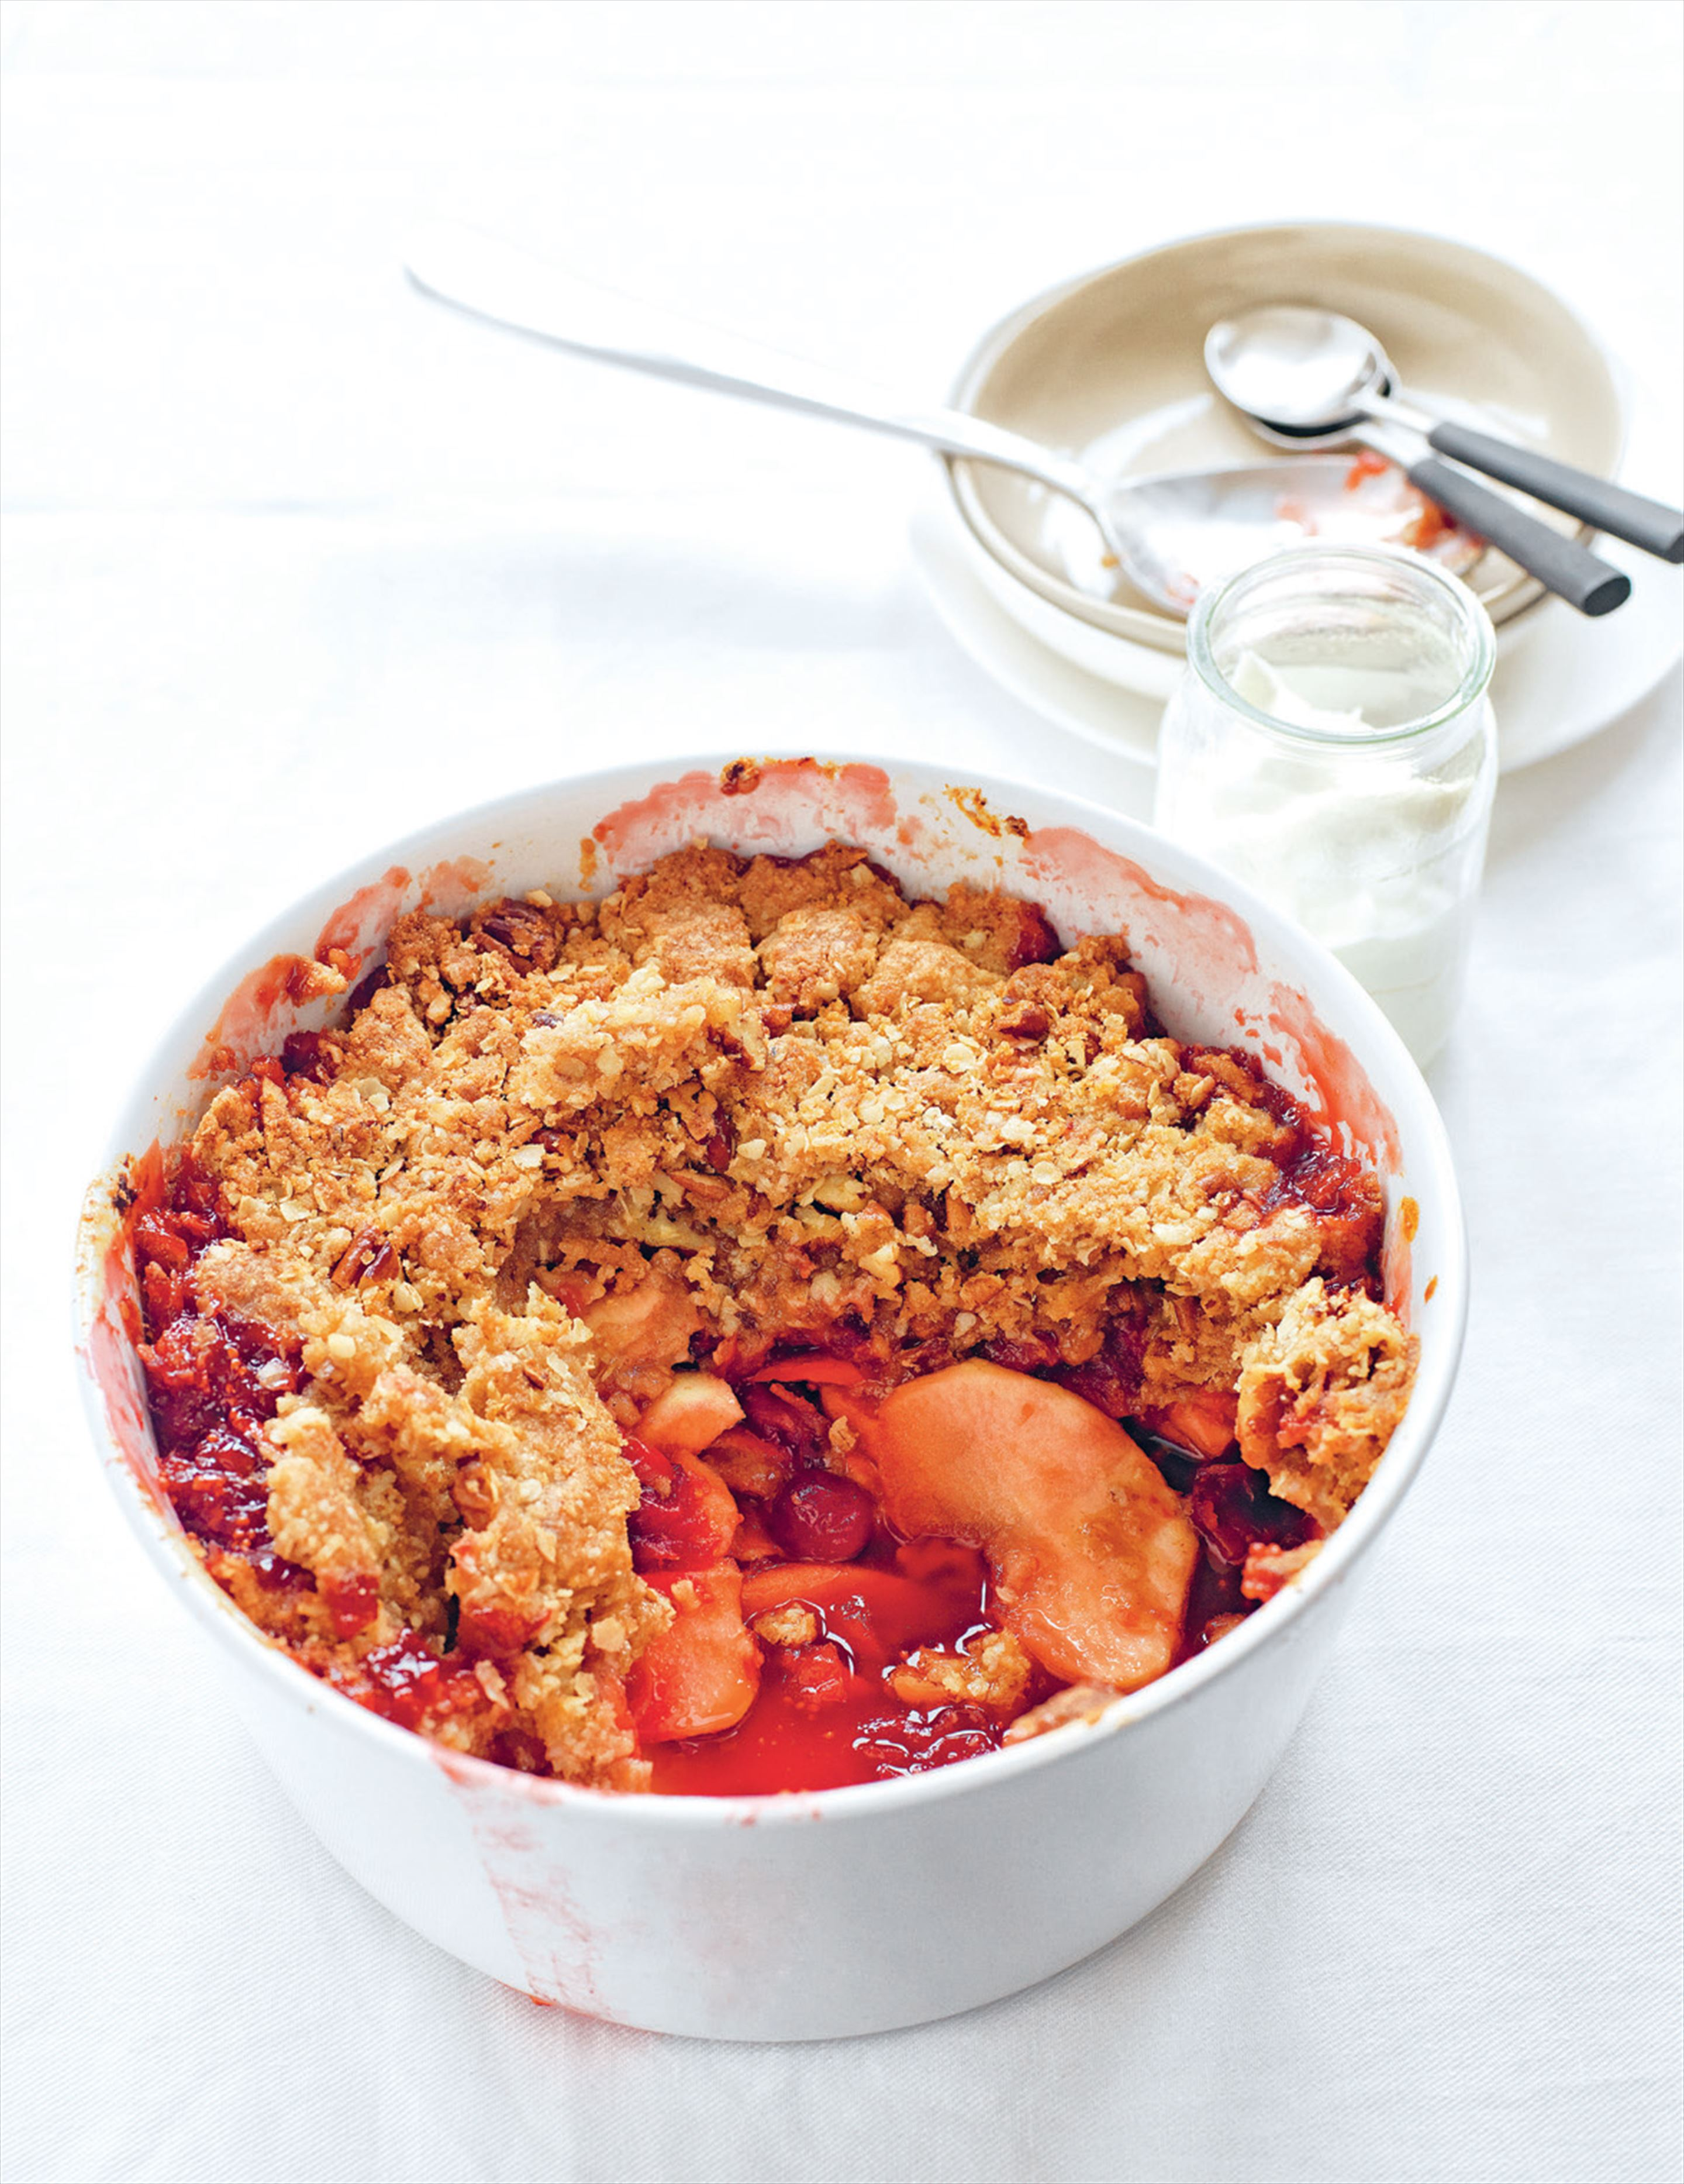 Cranberry, apple & oat crumble